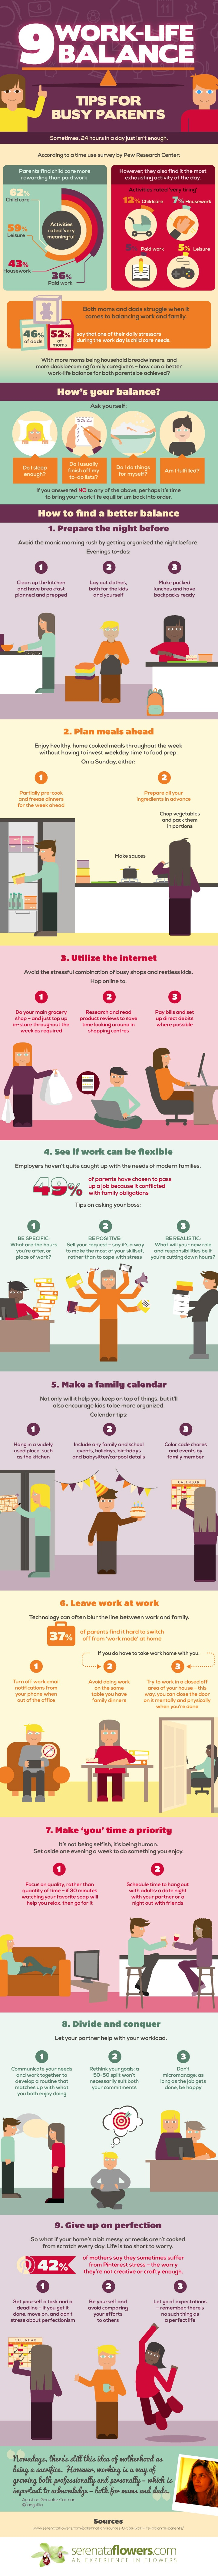 Work-Life Balance Hacks for Parents [Infographic] - by TINYpulse